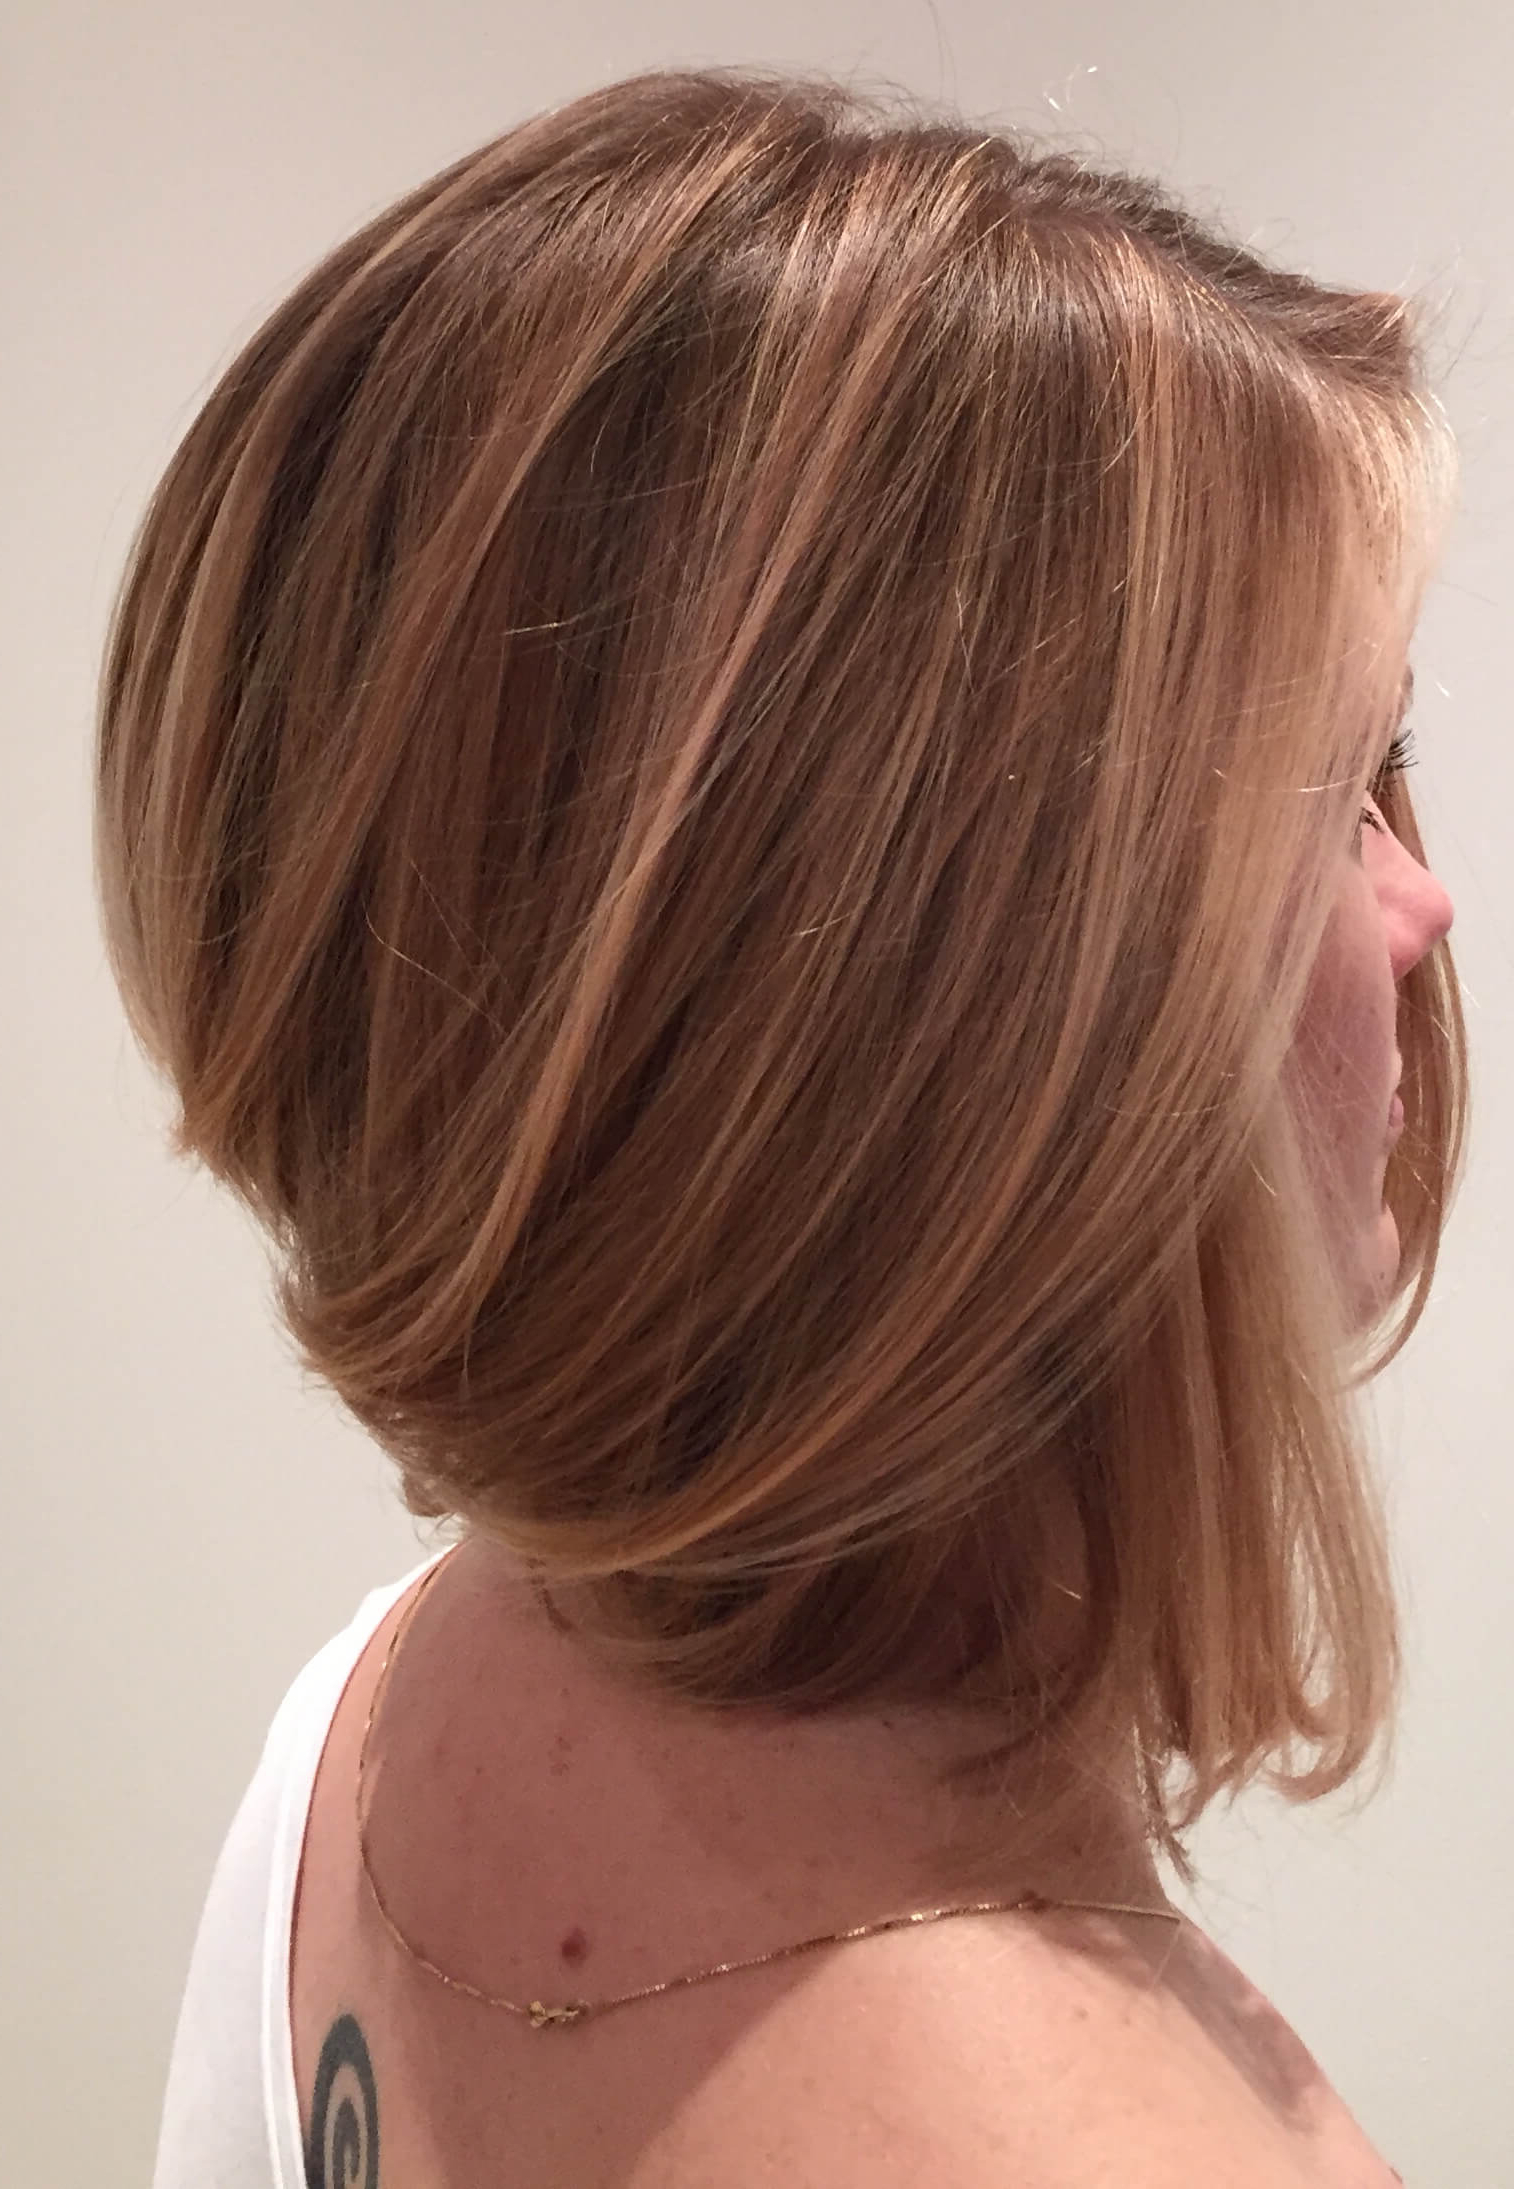 Concave Bob Haircuts – 8 Sexiest Cuts You Have To Try In Inverted Brunette Bob Hairstyles With Messy Curls (View 18 of 25)